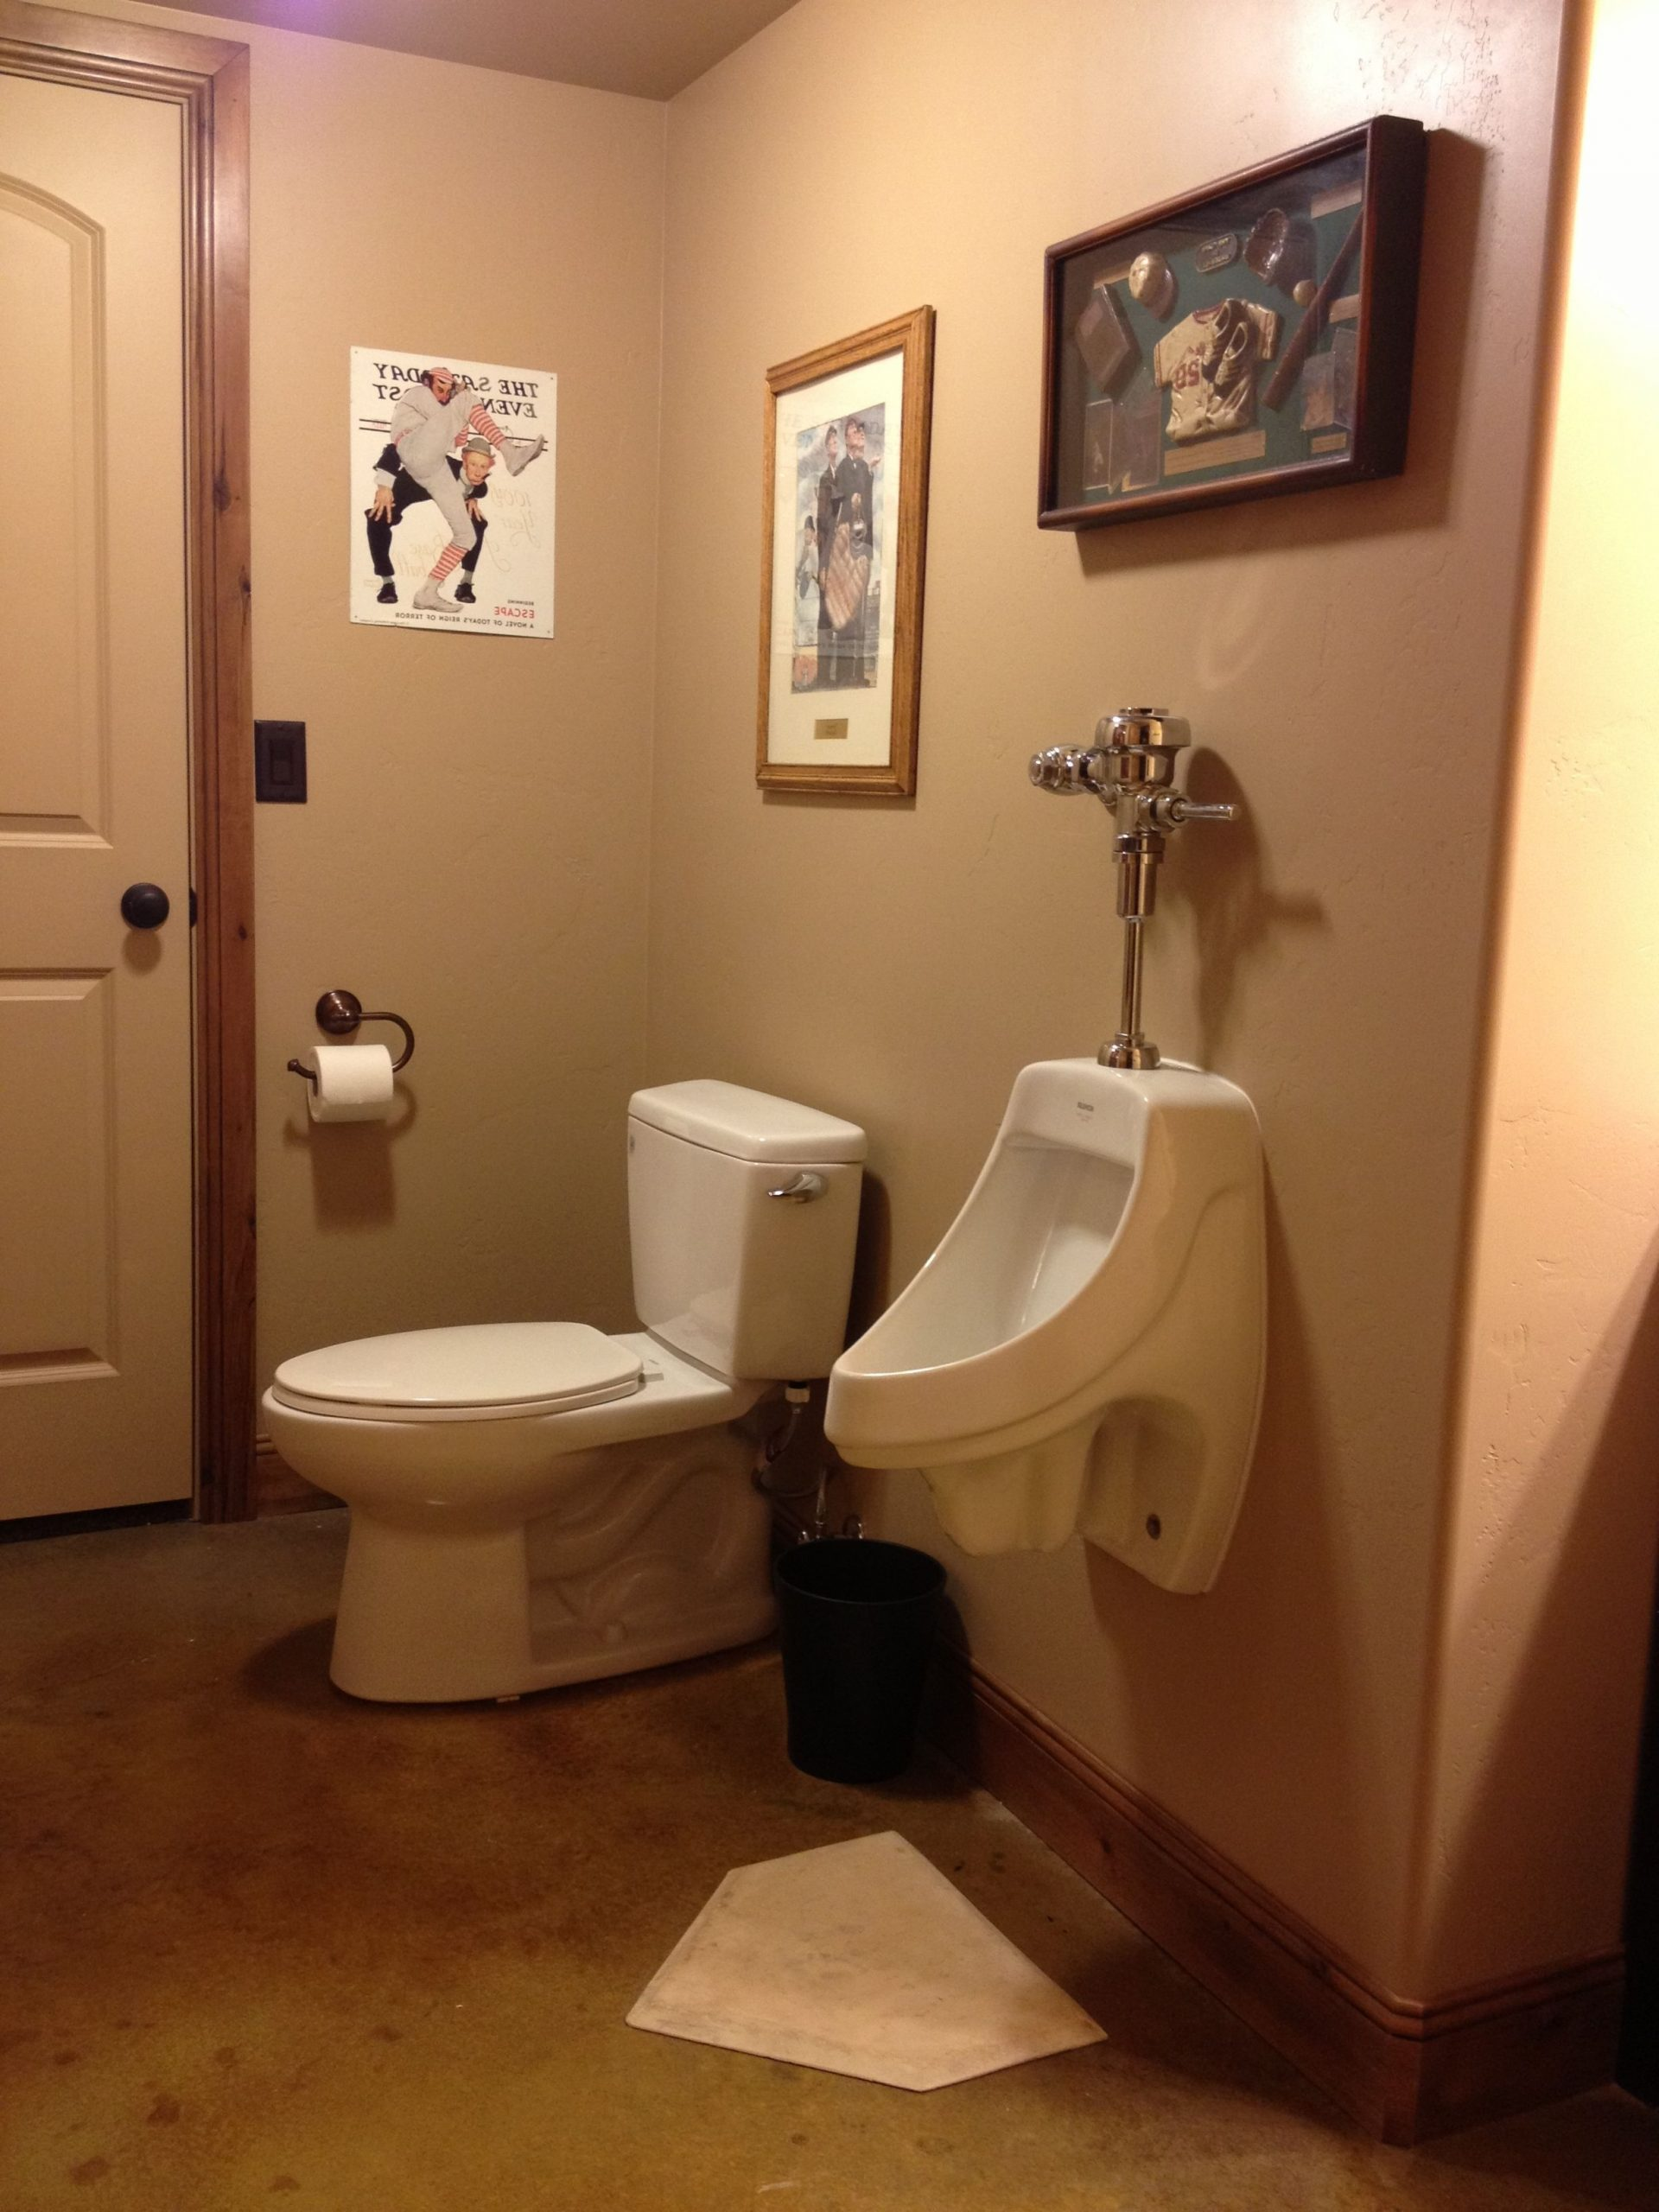 Antique Baseball Themed Bathroom. Yes, This Is A Home Plate Baseball Bathroom